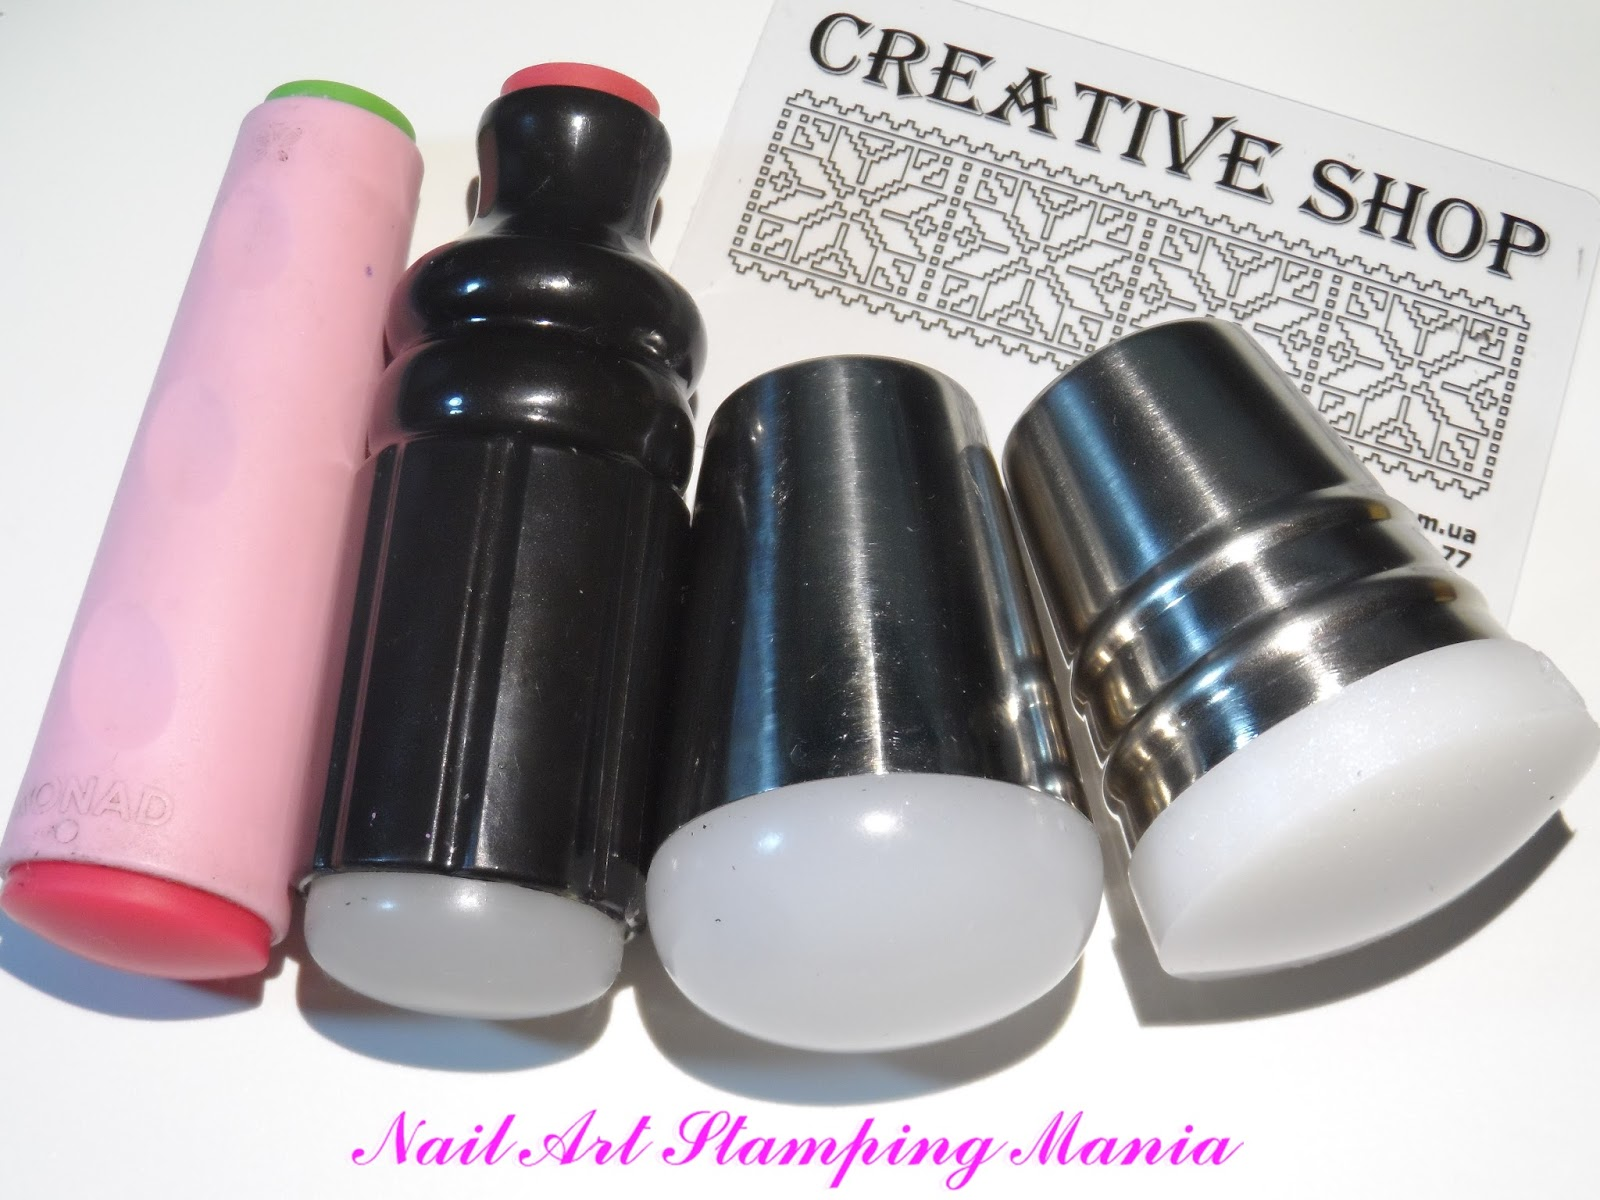 Nail Art Stamping Mania Creative Shop Space Collection